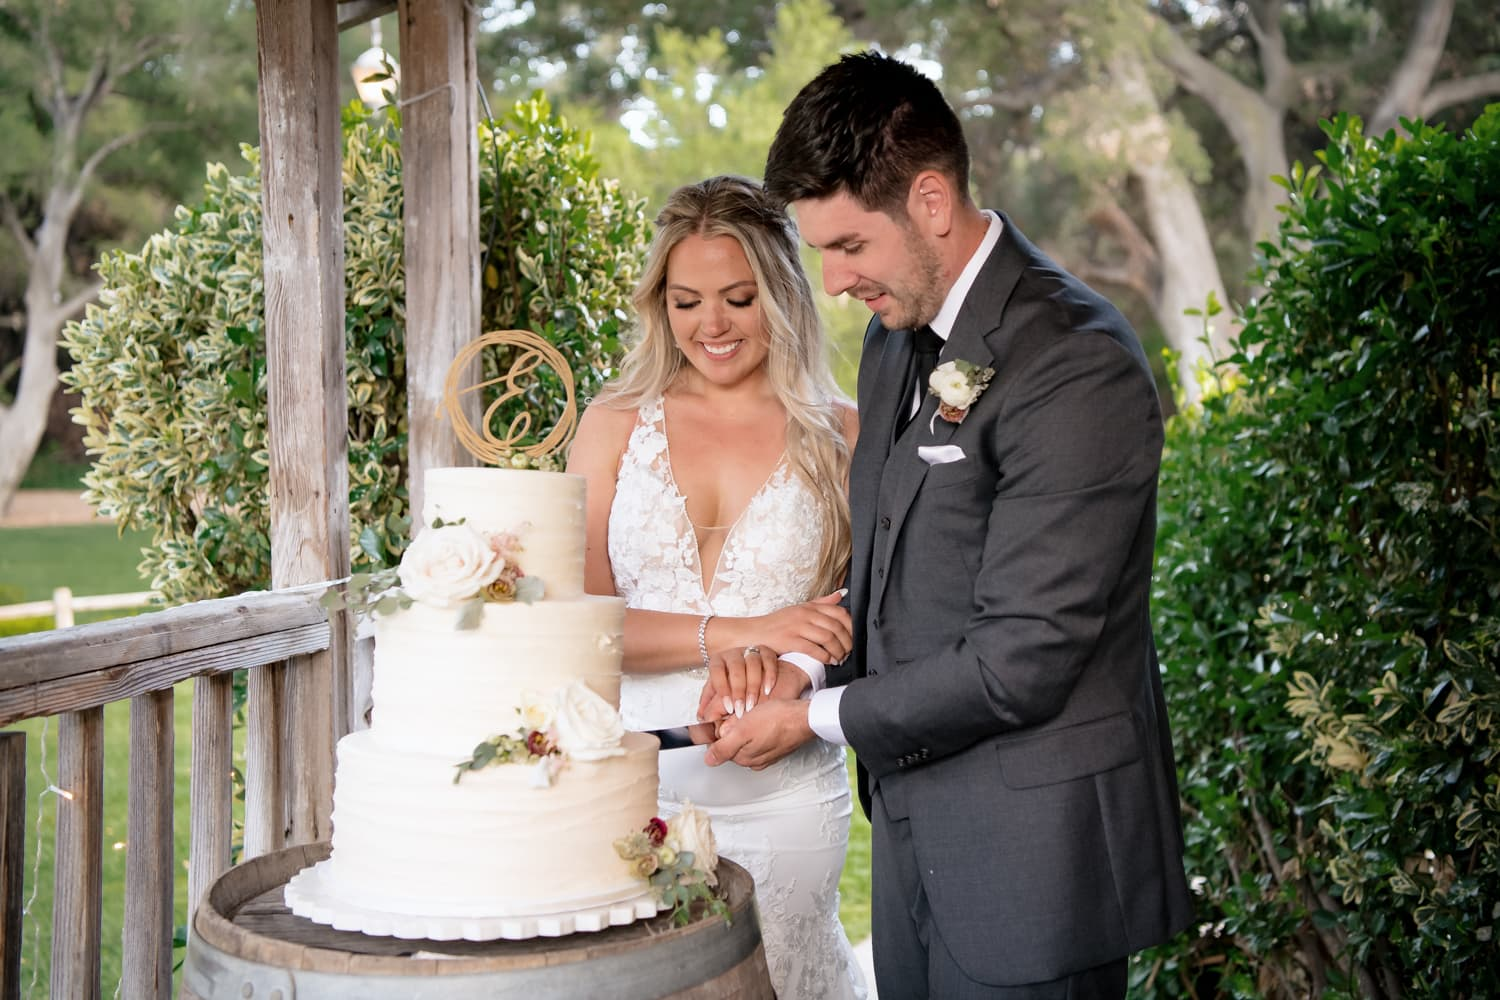 Couple cutting their cake at The Stone House in Temecula